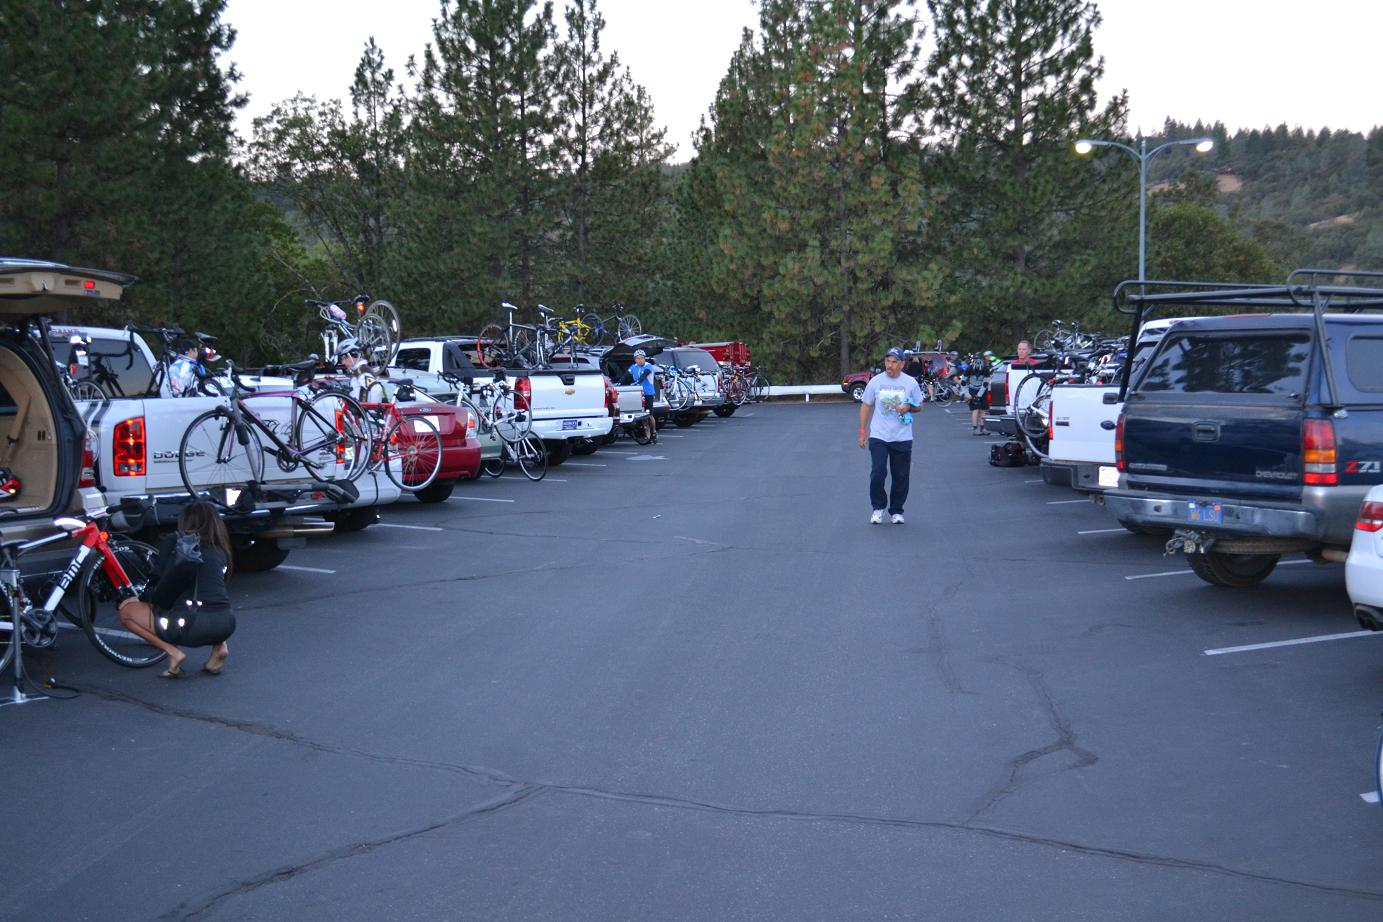 Staging at North Fork School for Grizzly Ride - photo by Gina Clugston